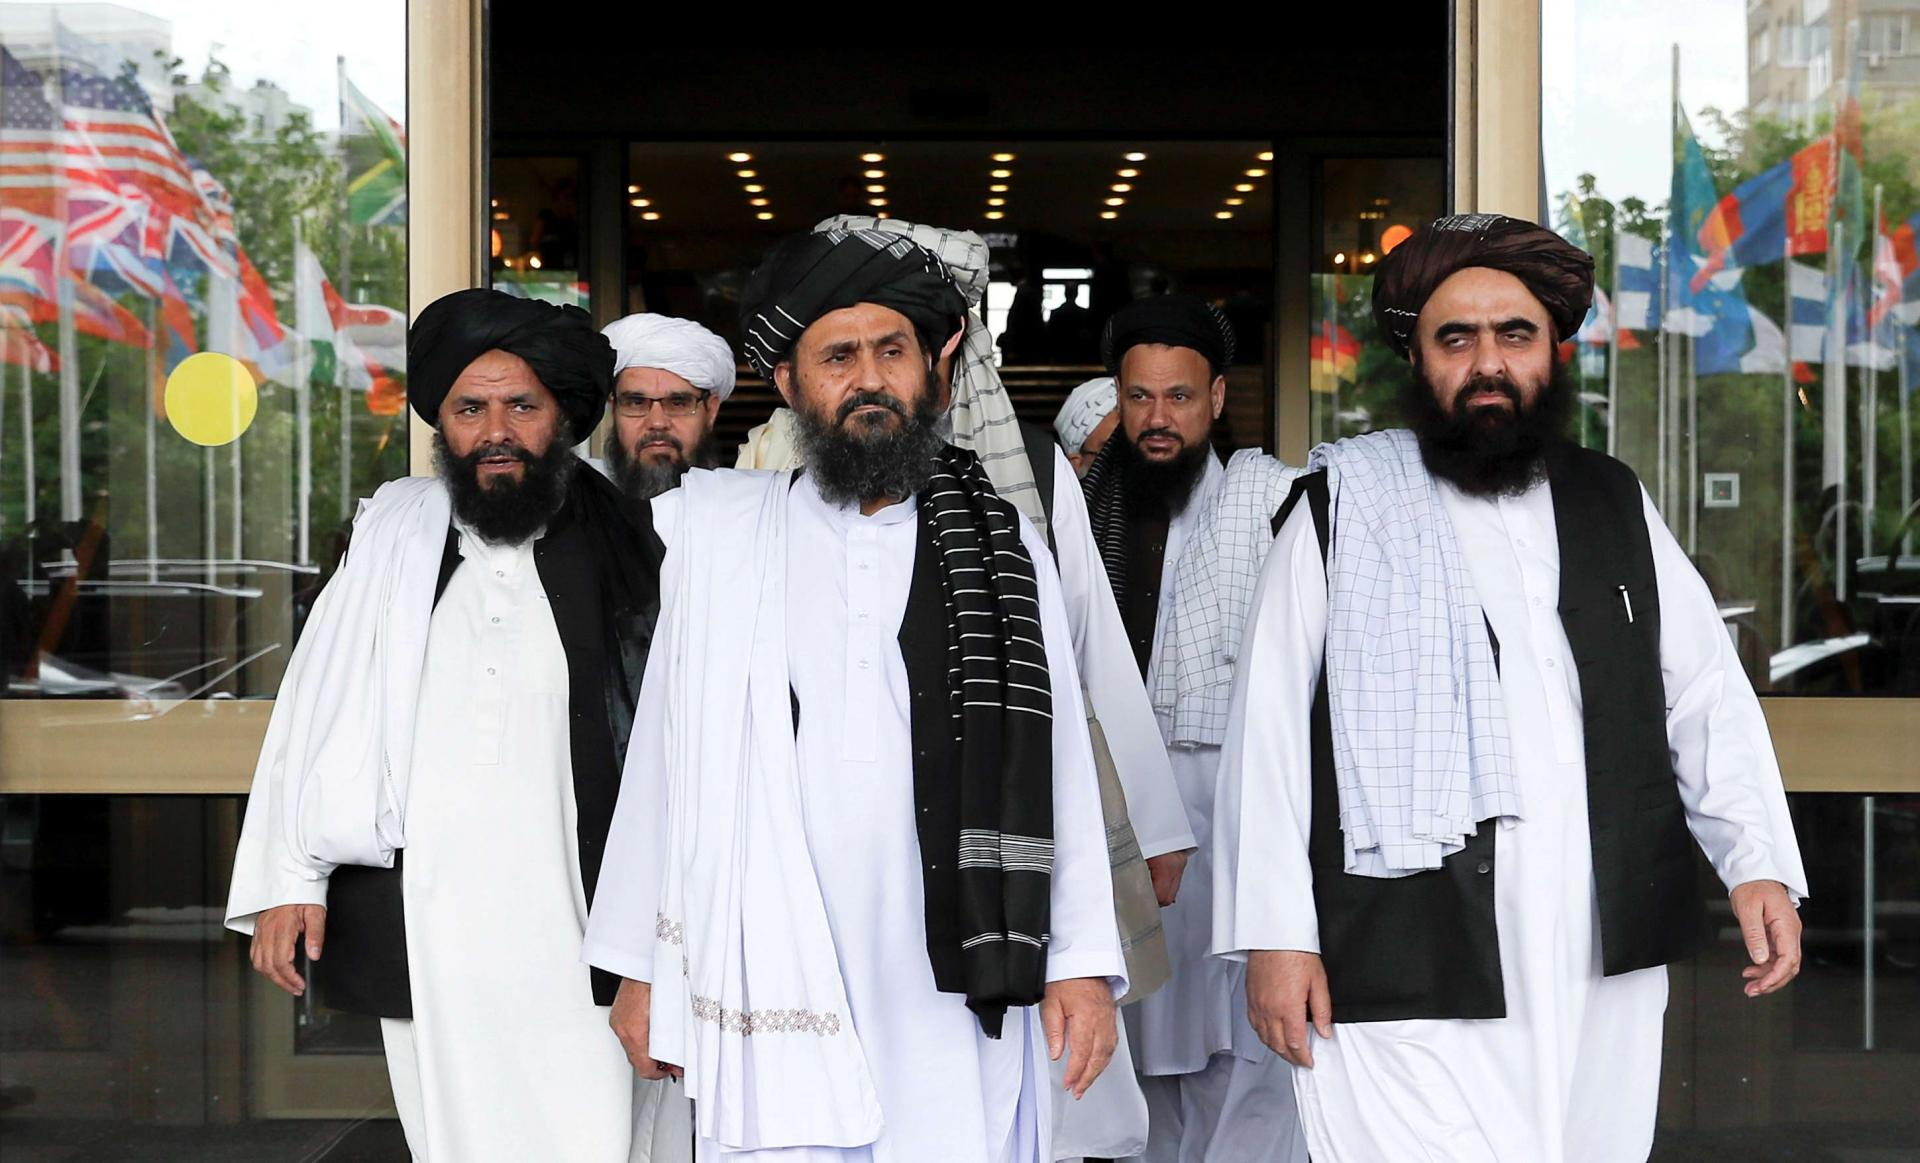 Tahrir al-Sham Issues Statement About Taliban Rise to Power in Afghanistan